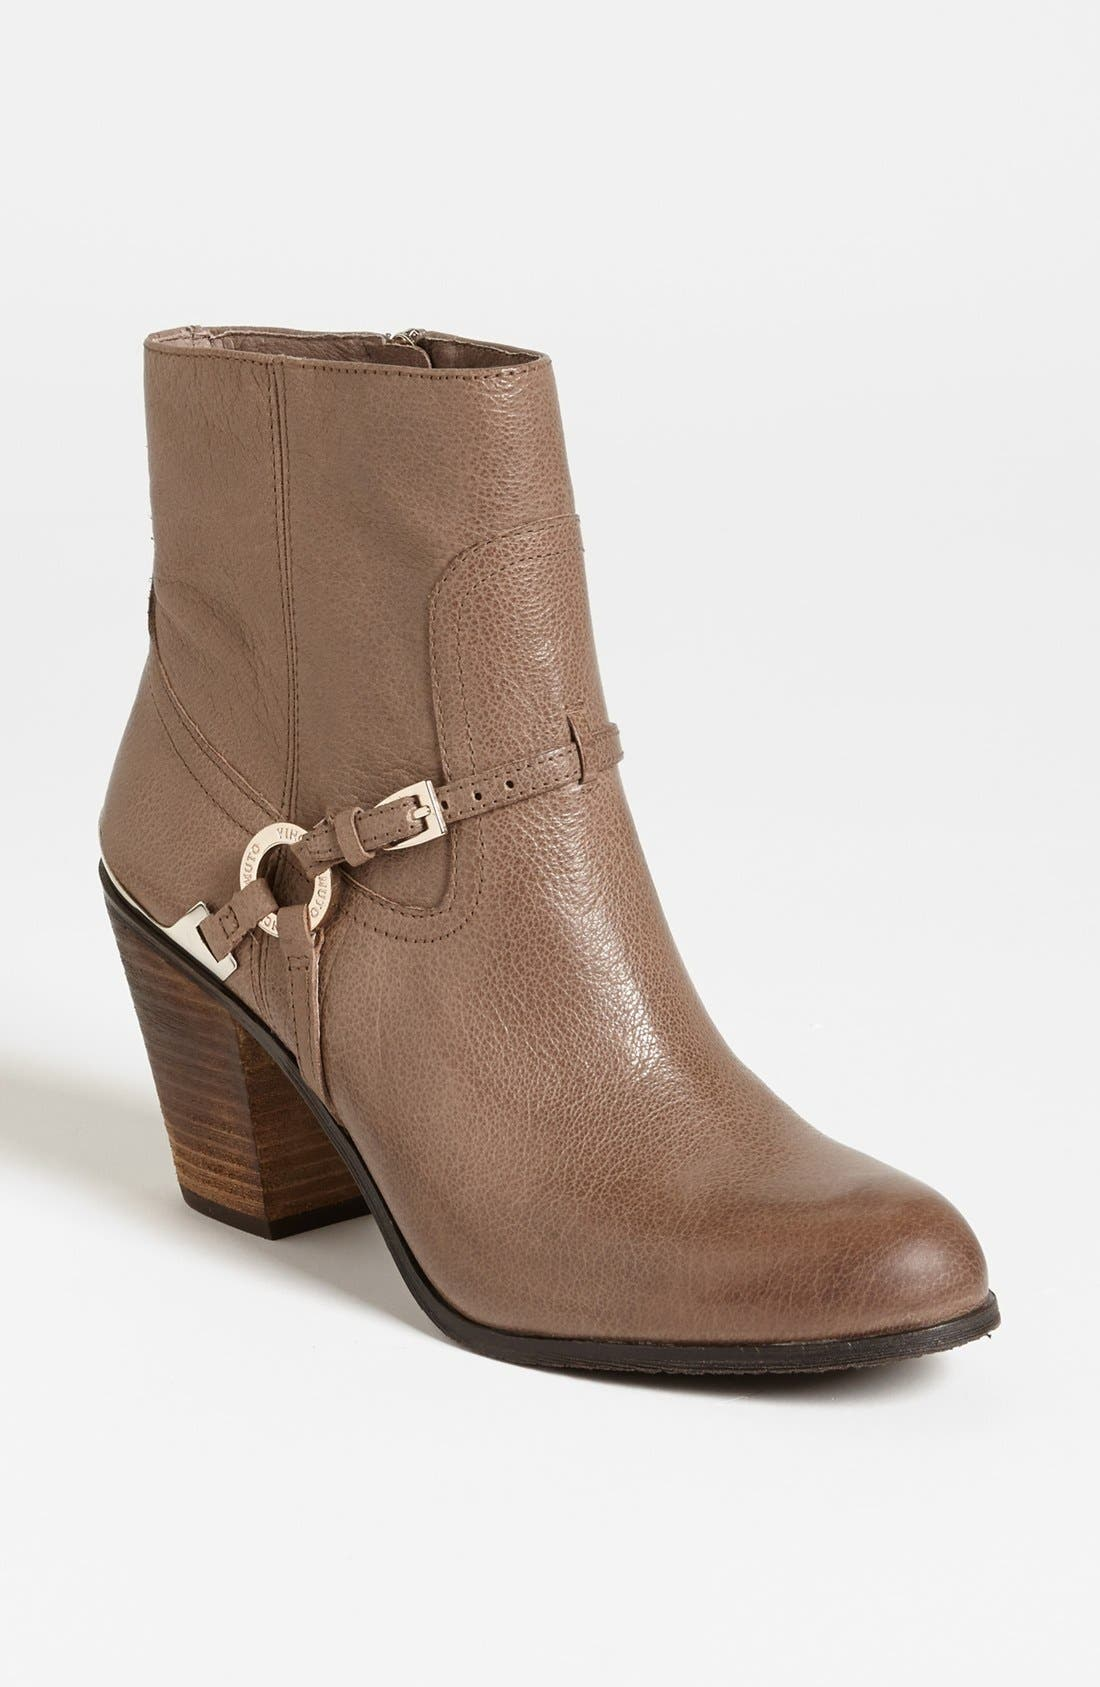 Main Image - Vince Camuto 'Gregger' Bootie